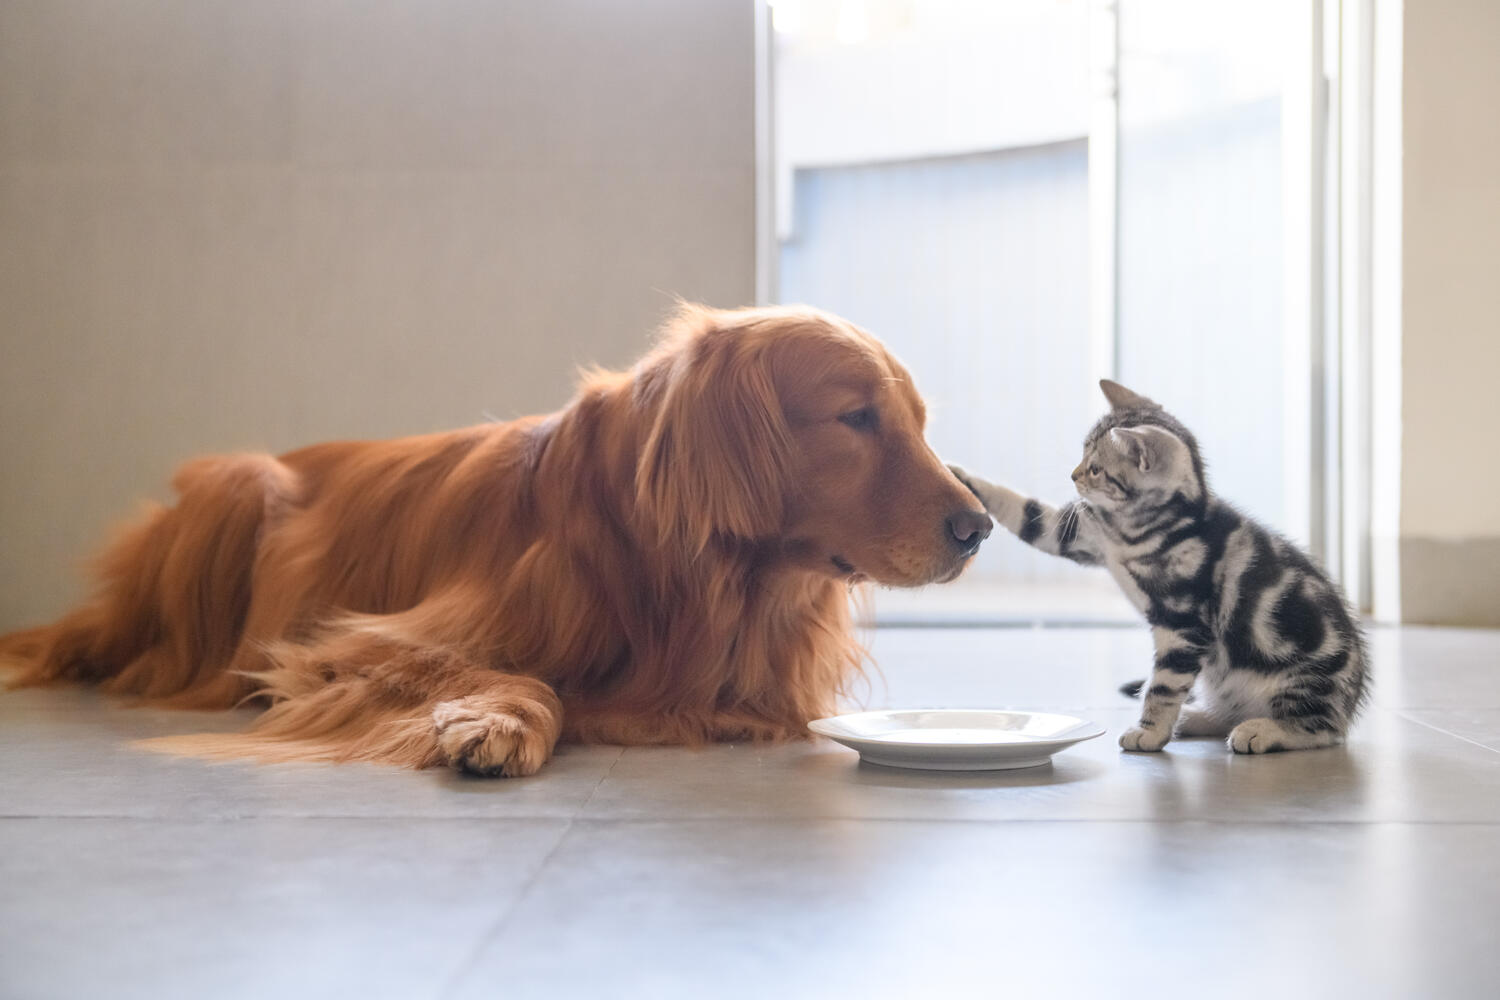 Dog and kitten photo to demonstrate animal nutrition